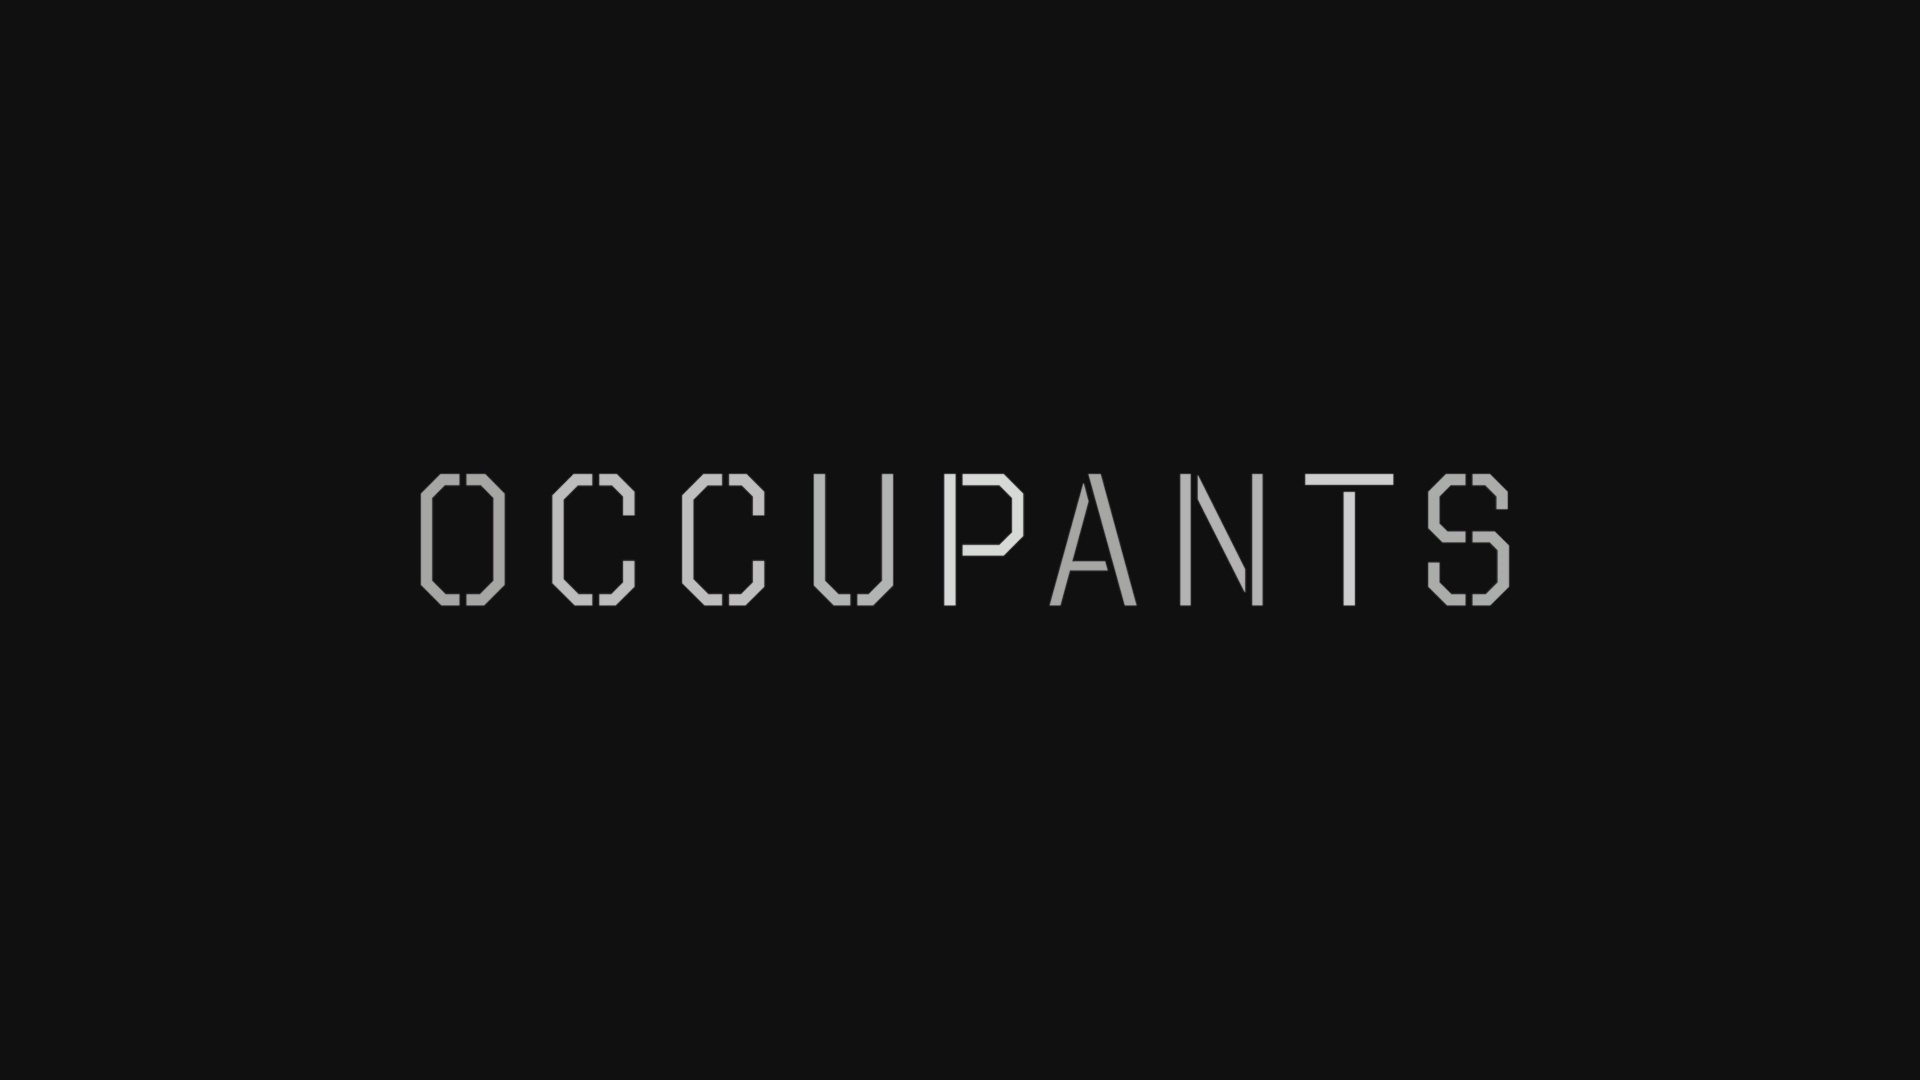 Occupants.jpg